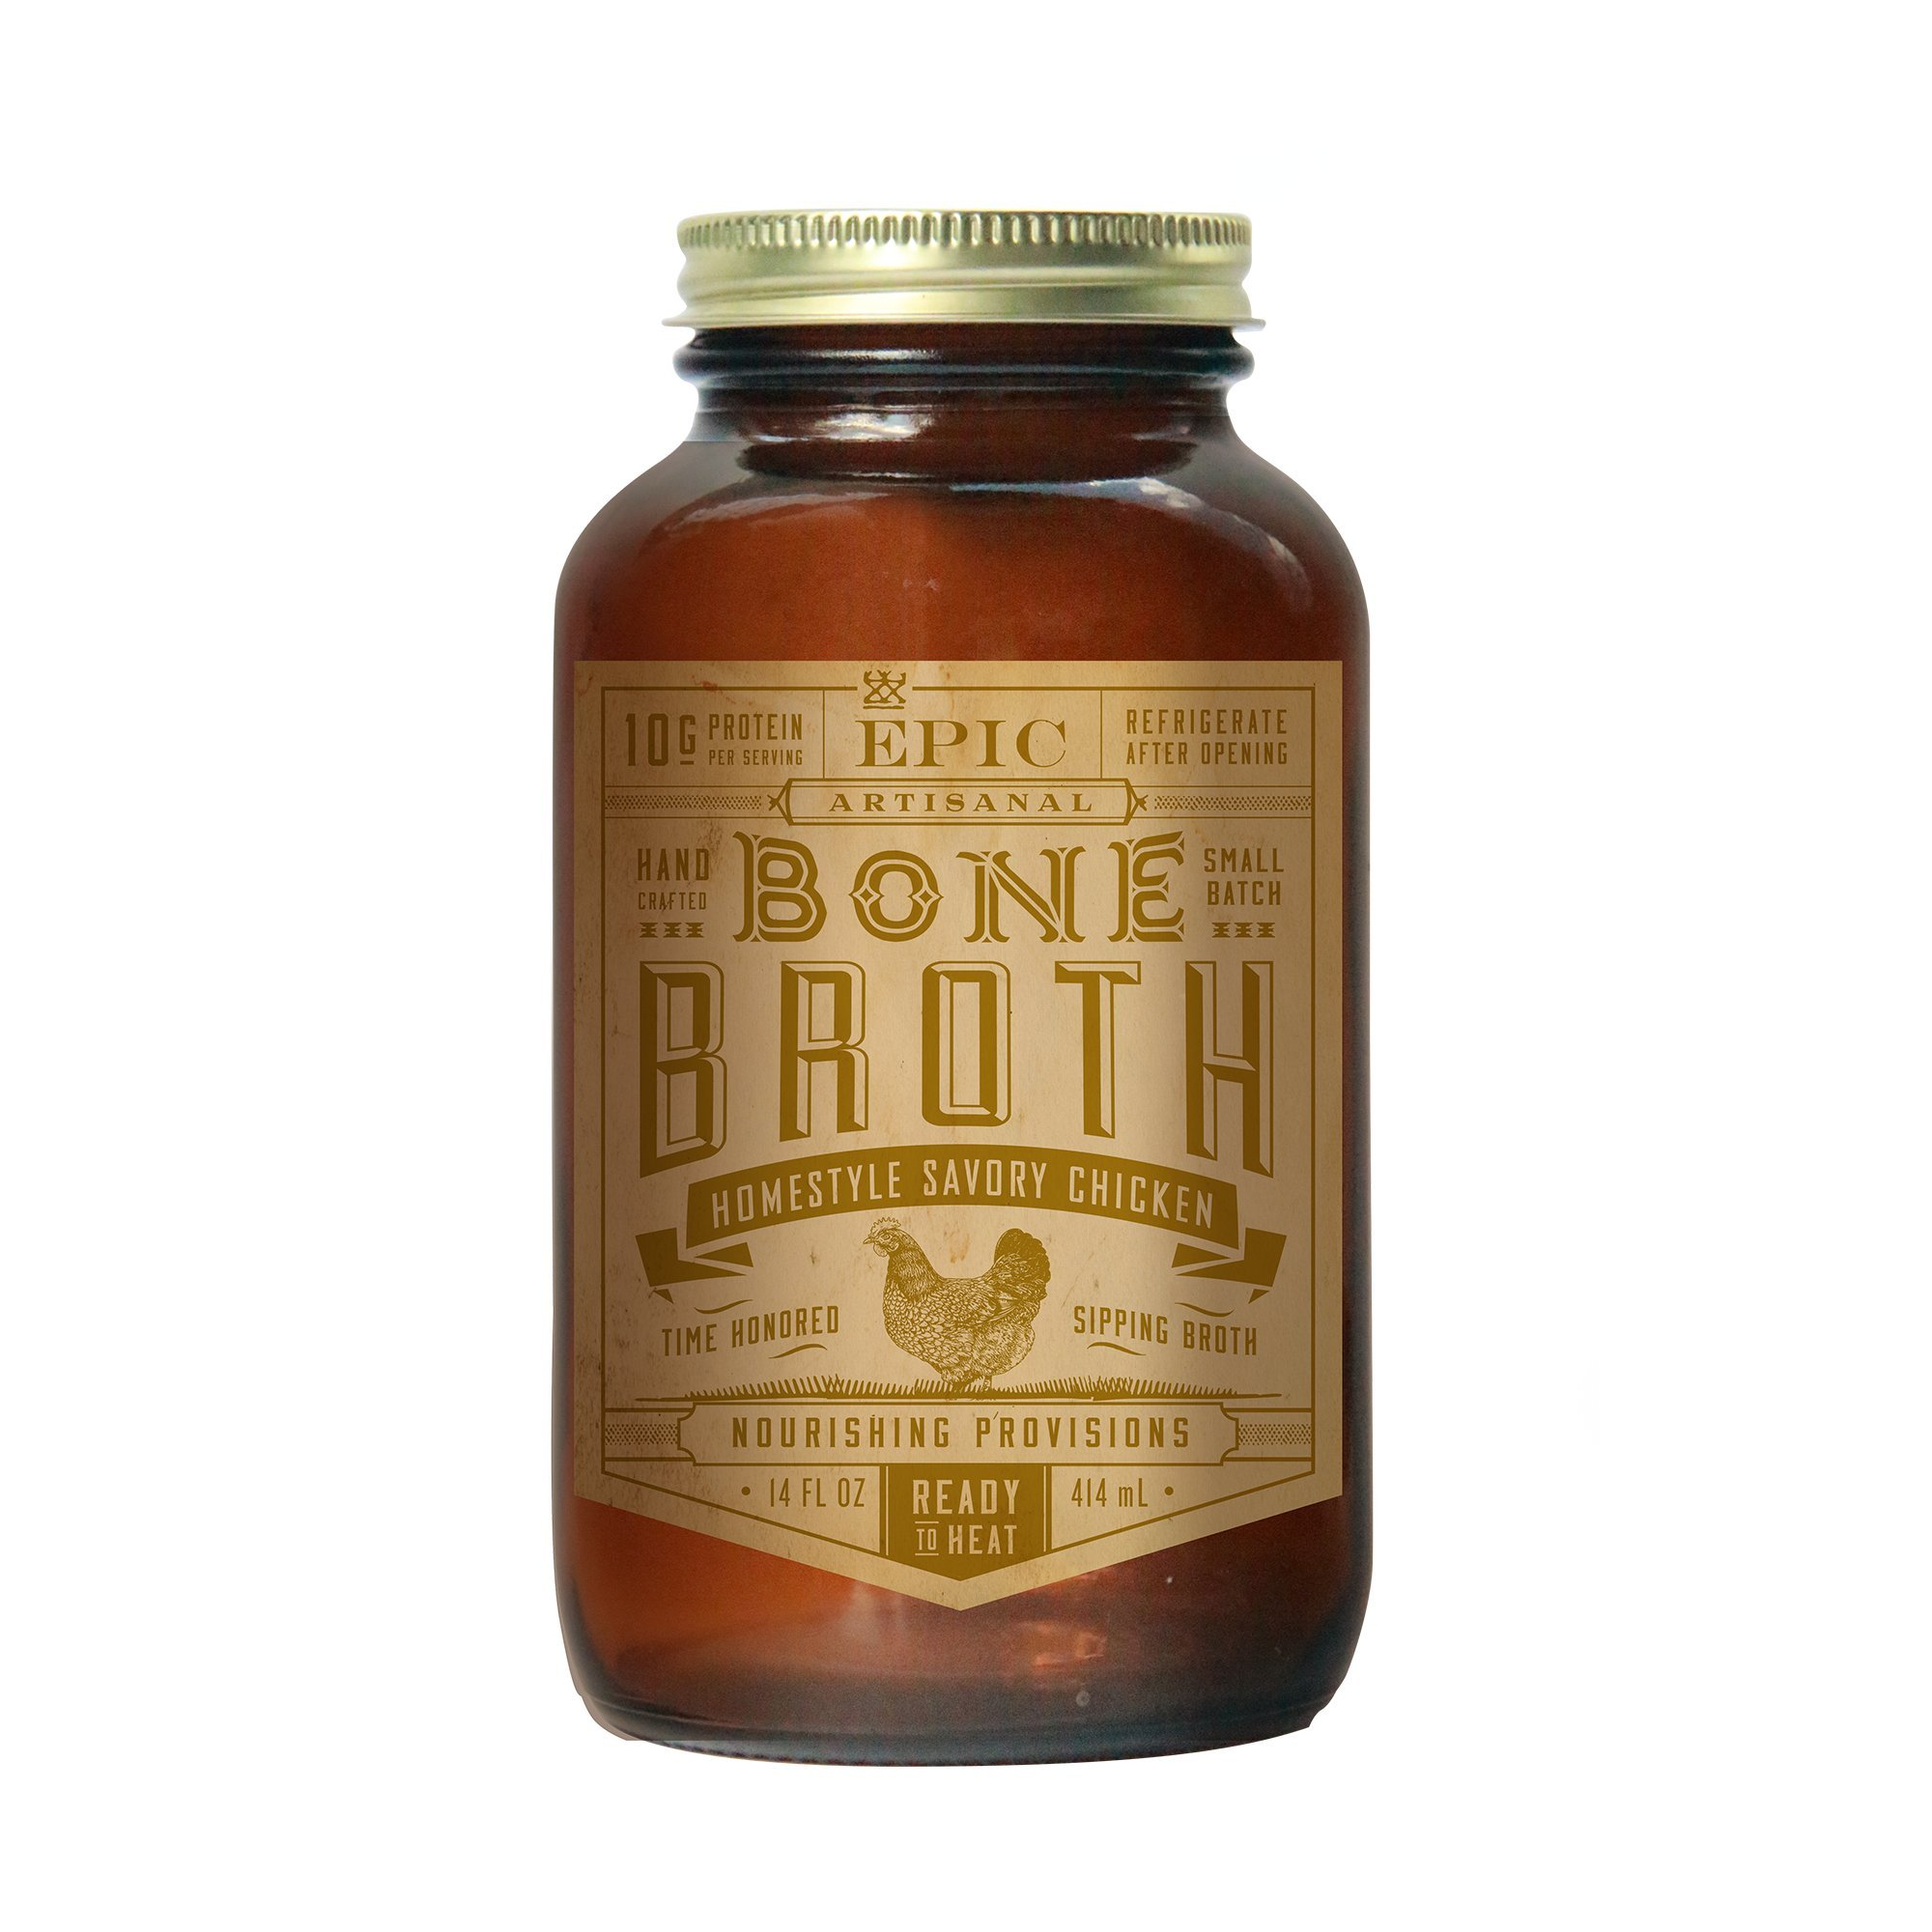 Epic Artisanal Bone Broth, Homestyle Savory Chicken, 14 Ounce (Pack of 6)